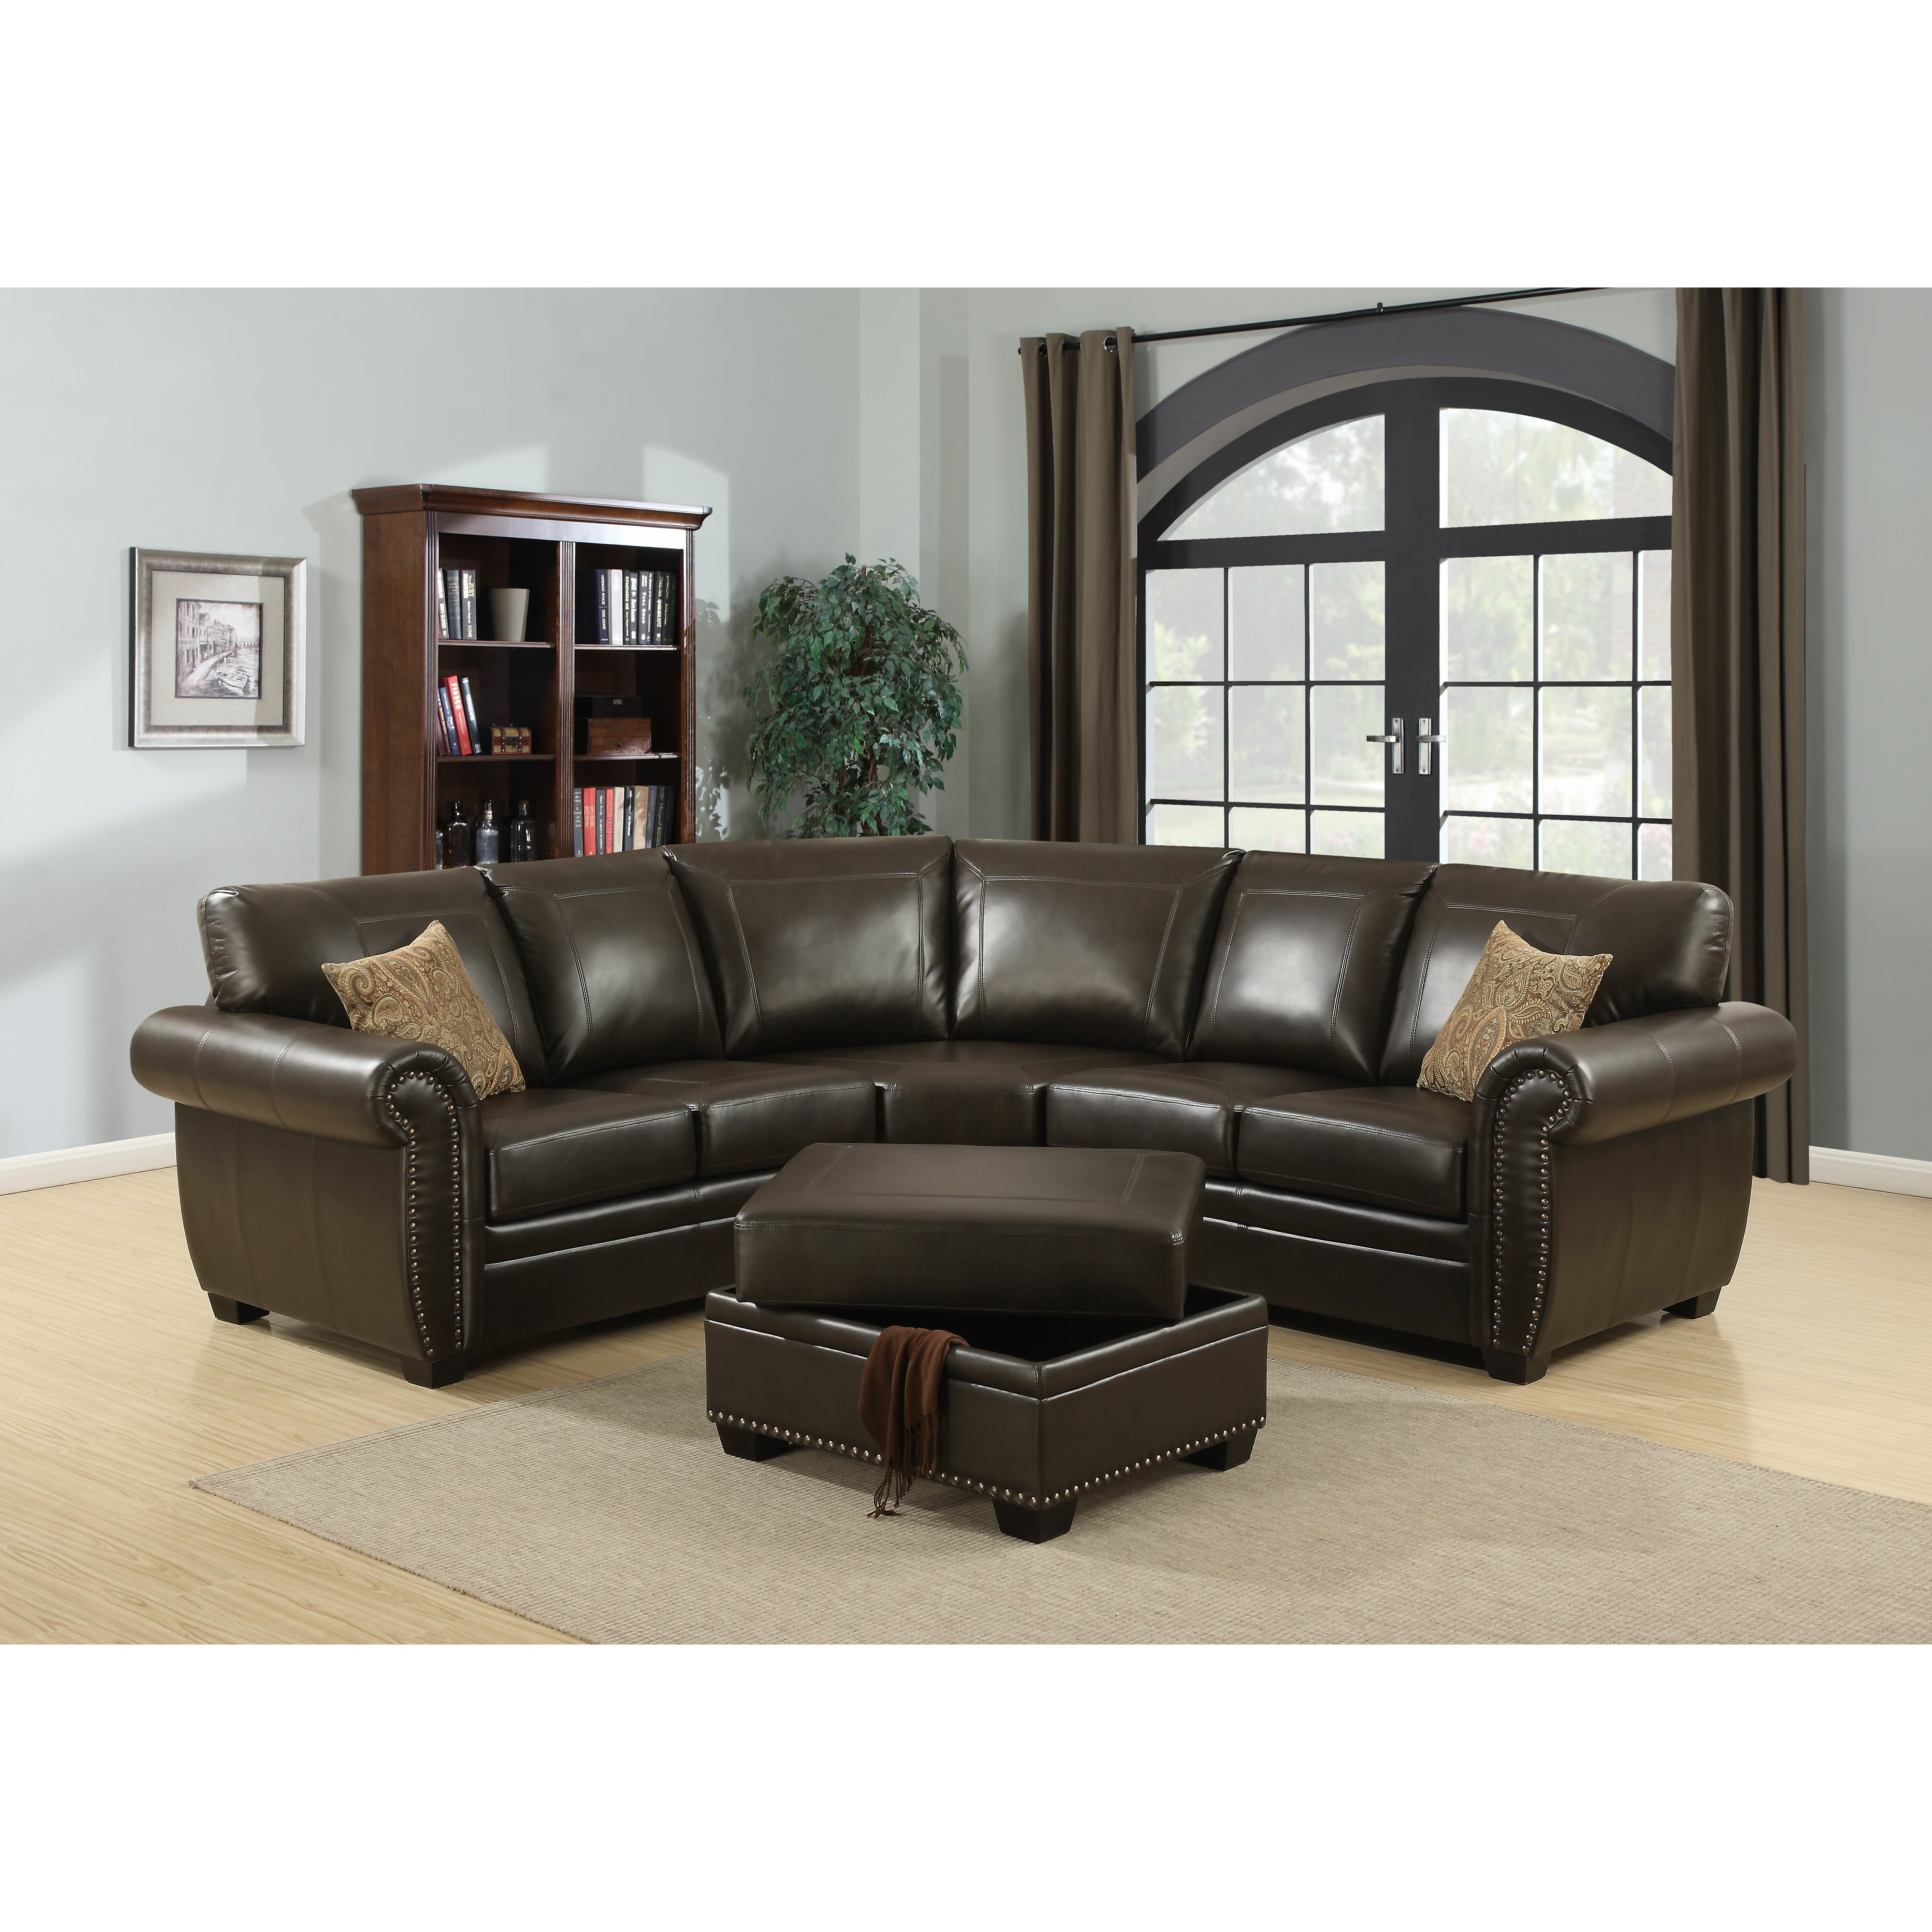 Wayfair sectionals defaultname full size of living room for Wayfair sectionals